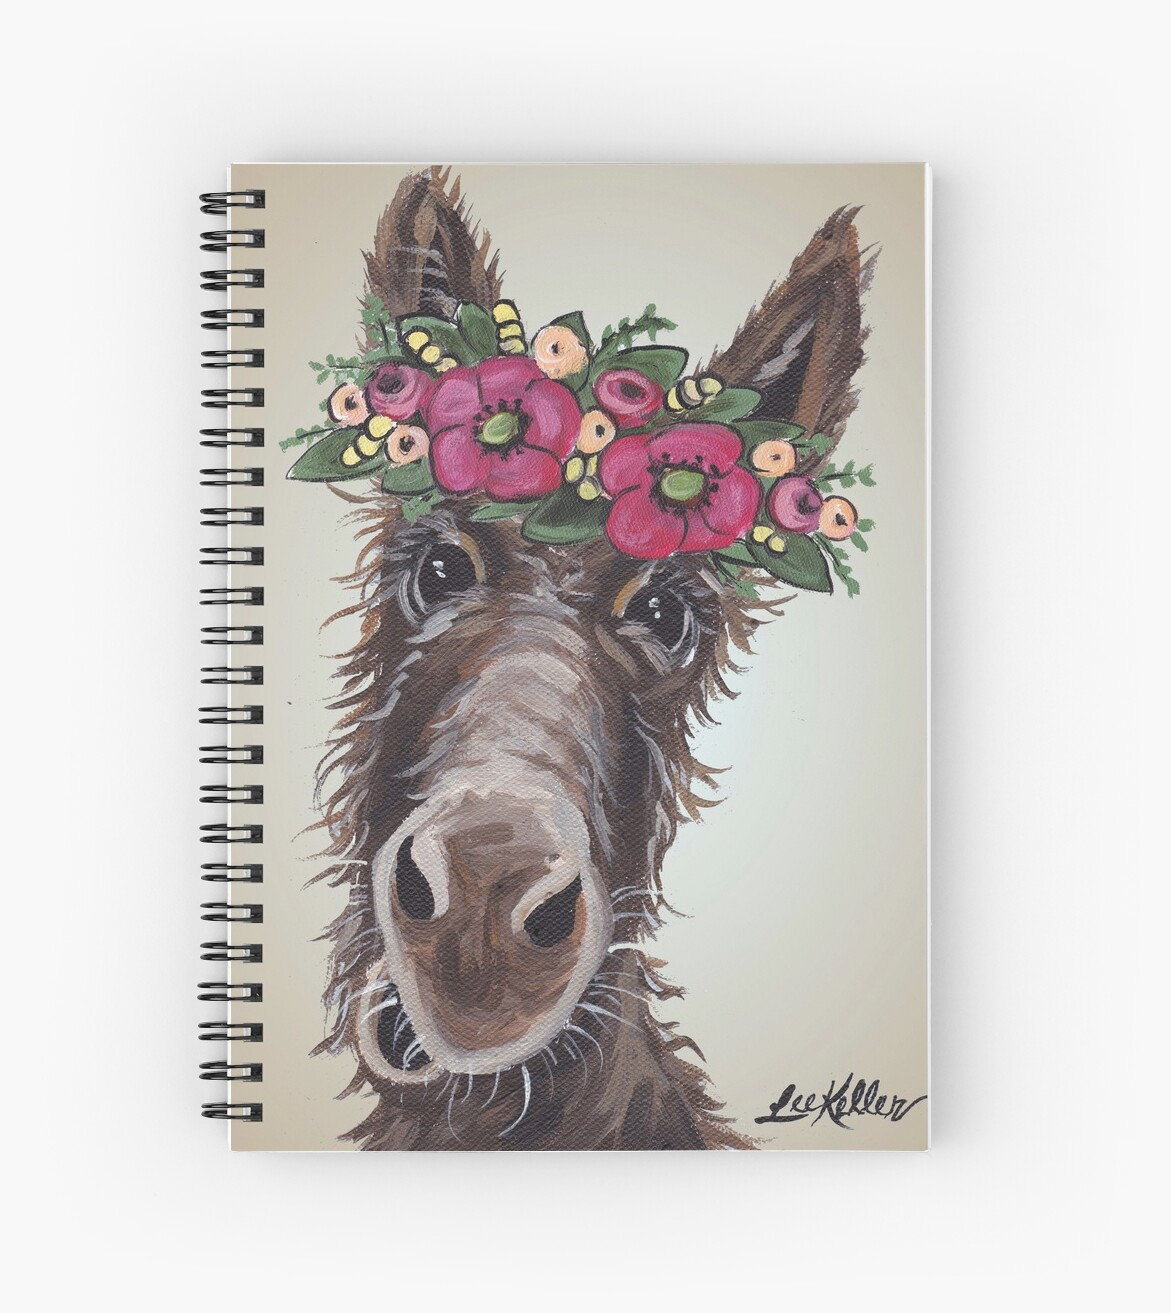 Donkey Art Donkey With Flower Crown Art Spiral Notebooks By